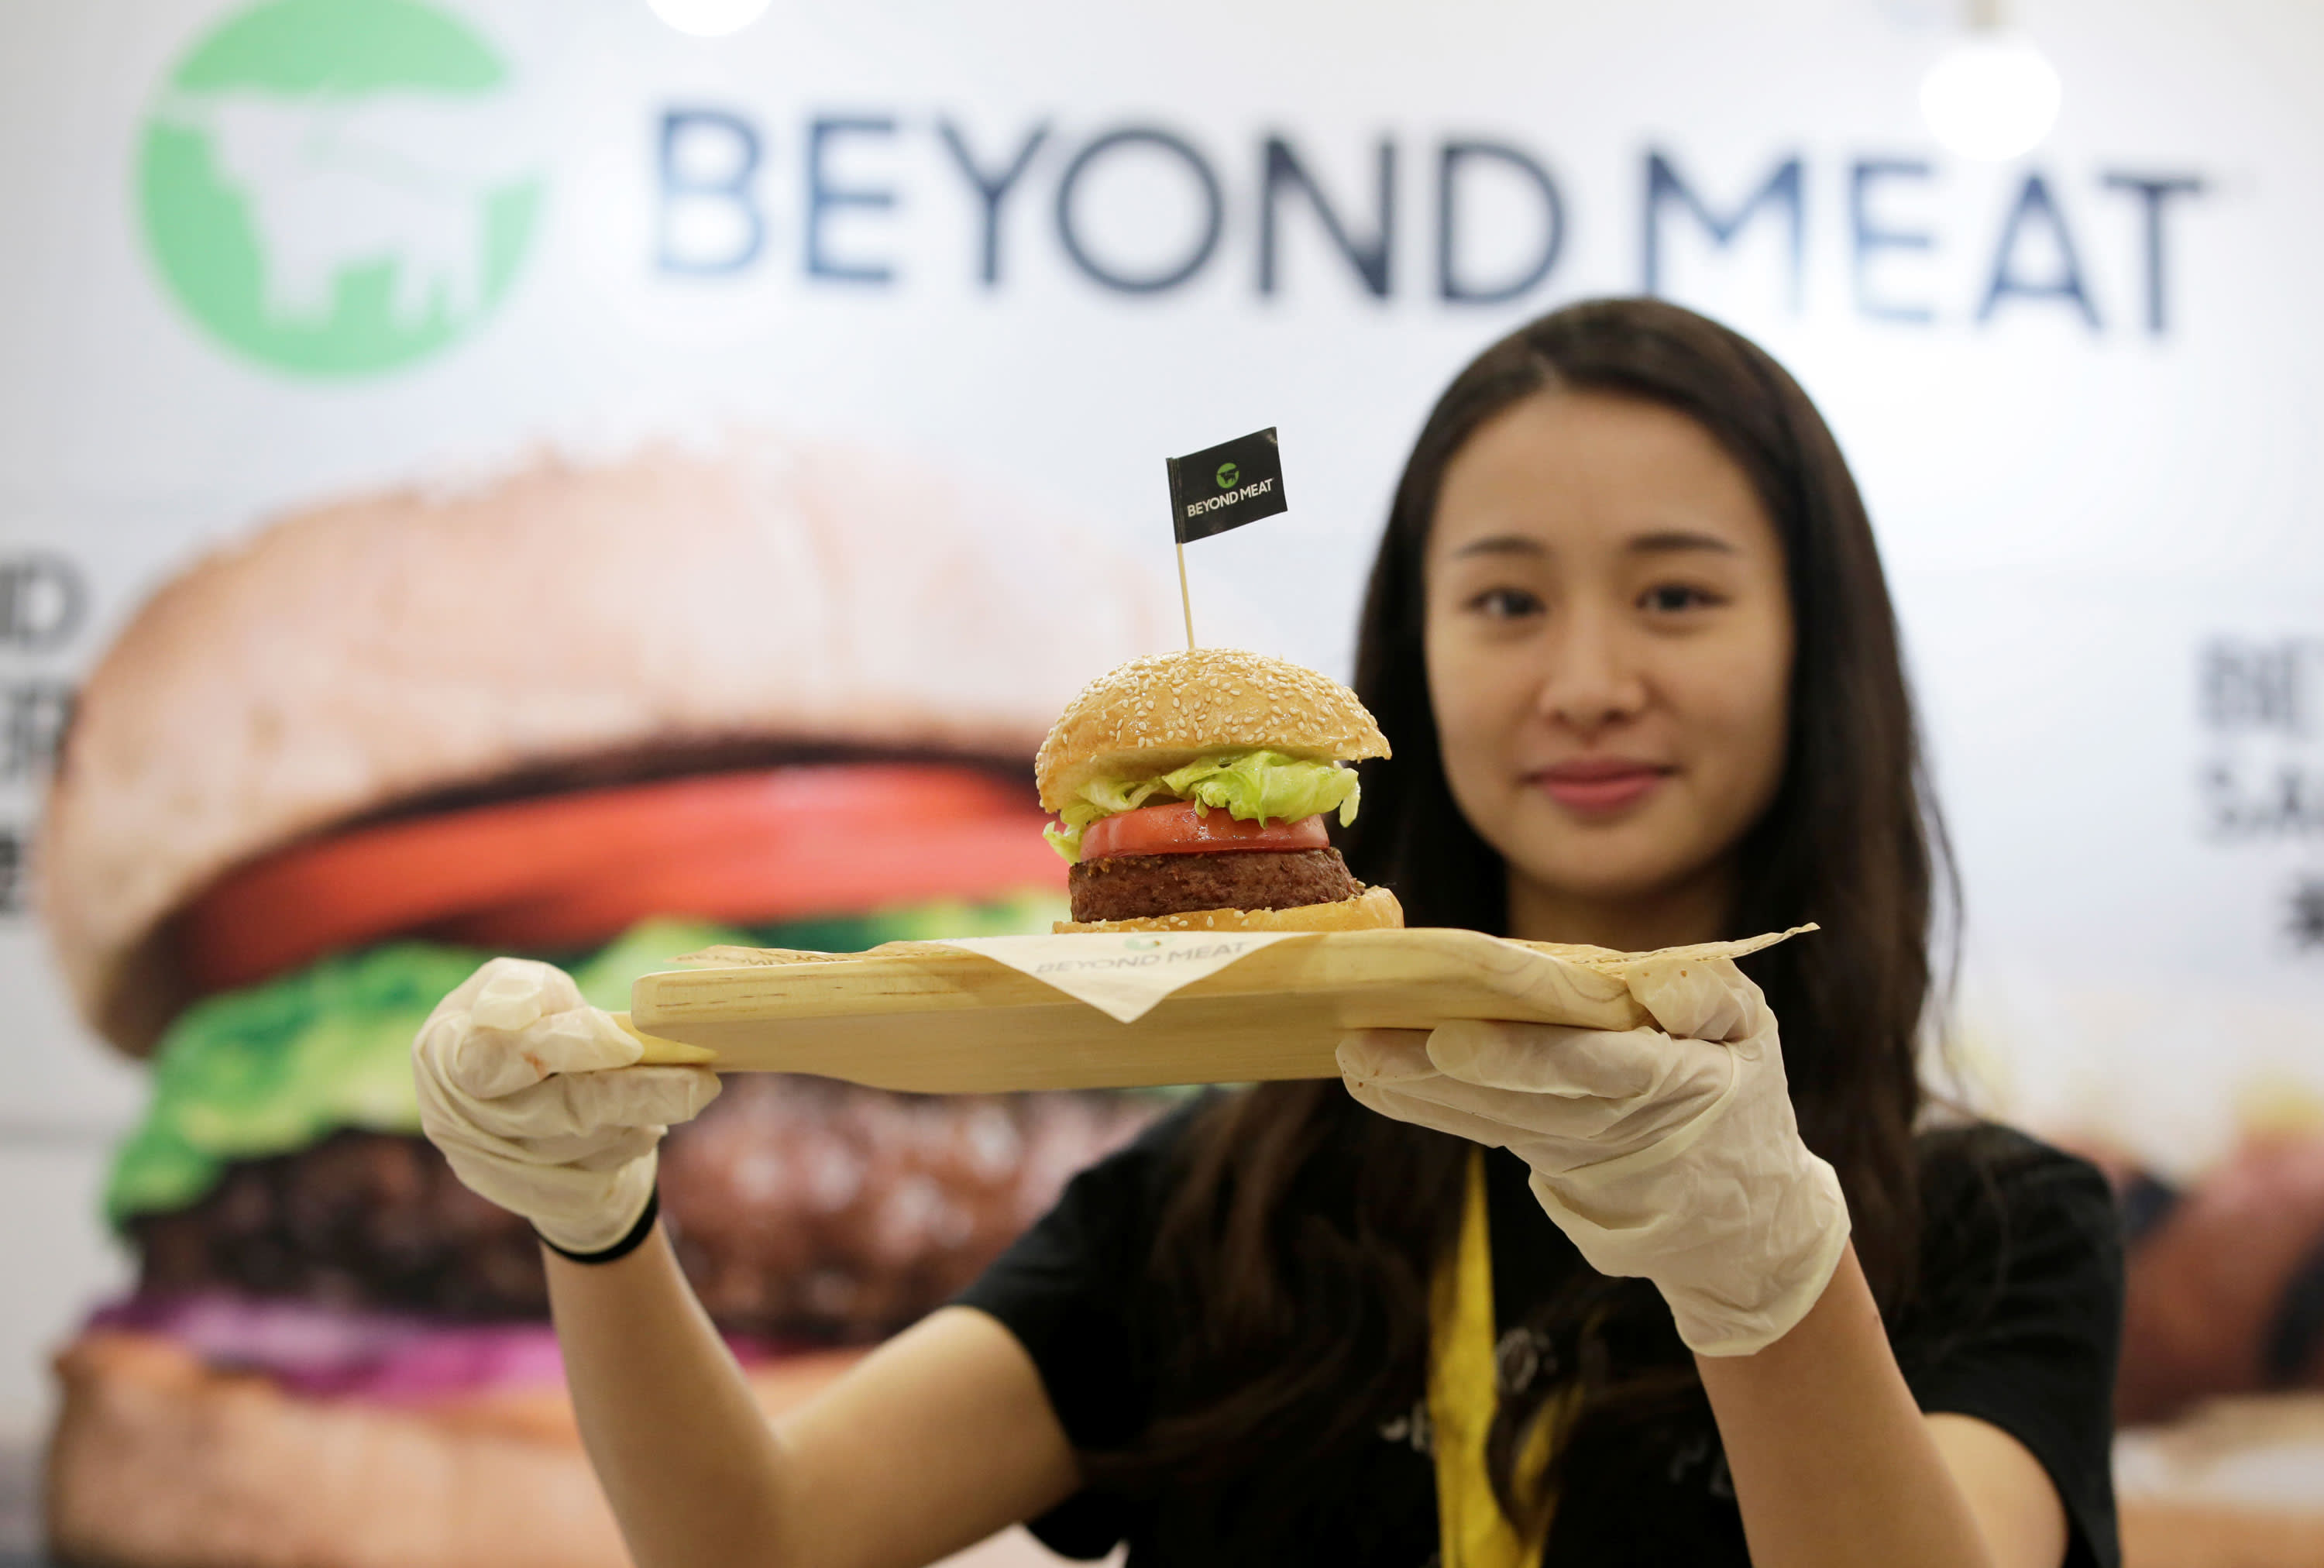 Stocks making the biggest moves after the bell: Beyond Meat, Etsy, Virgin Galactic & more